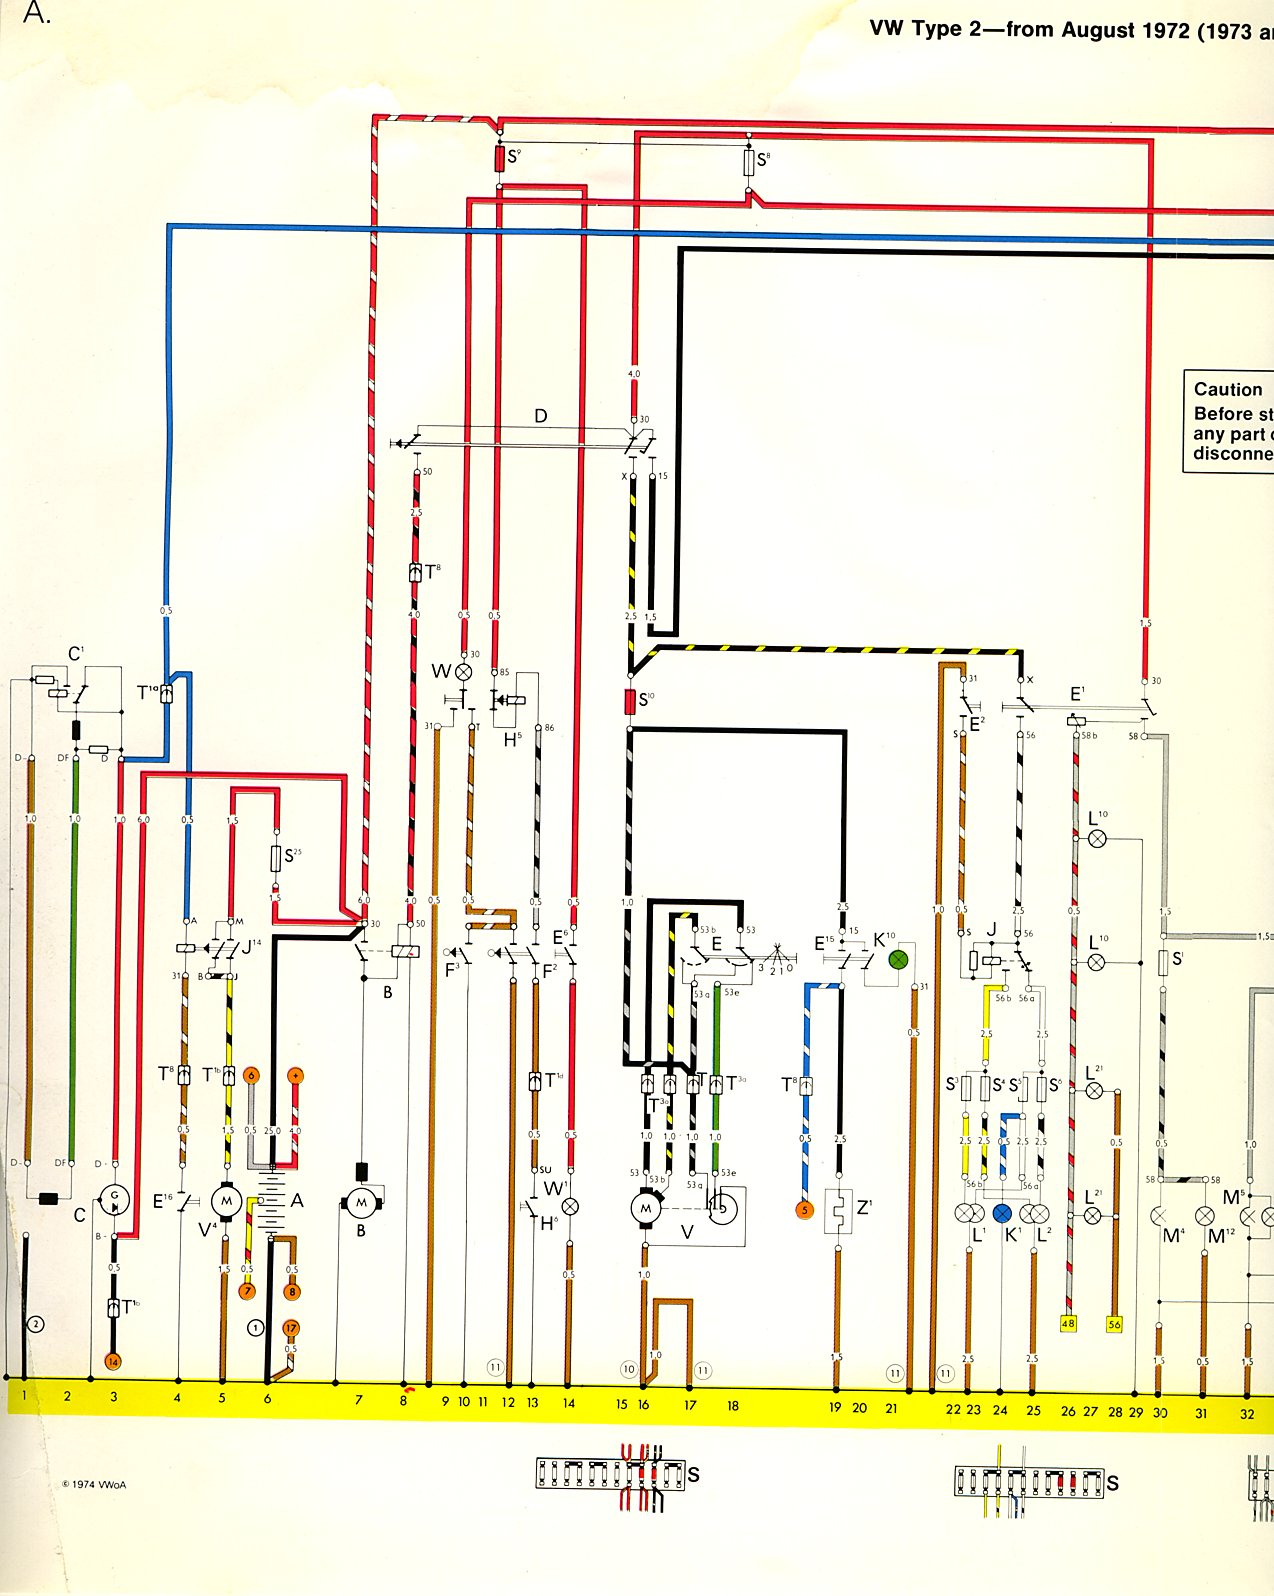 baybus_7374a vw bus wiring diagram 1965 vw bus wiring diagram \u2022 wiring diagrams 1970 vw bug wiring diagram at soozxer.org